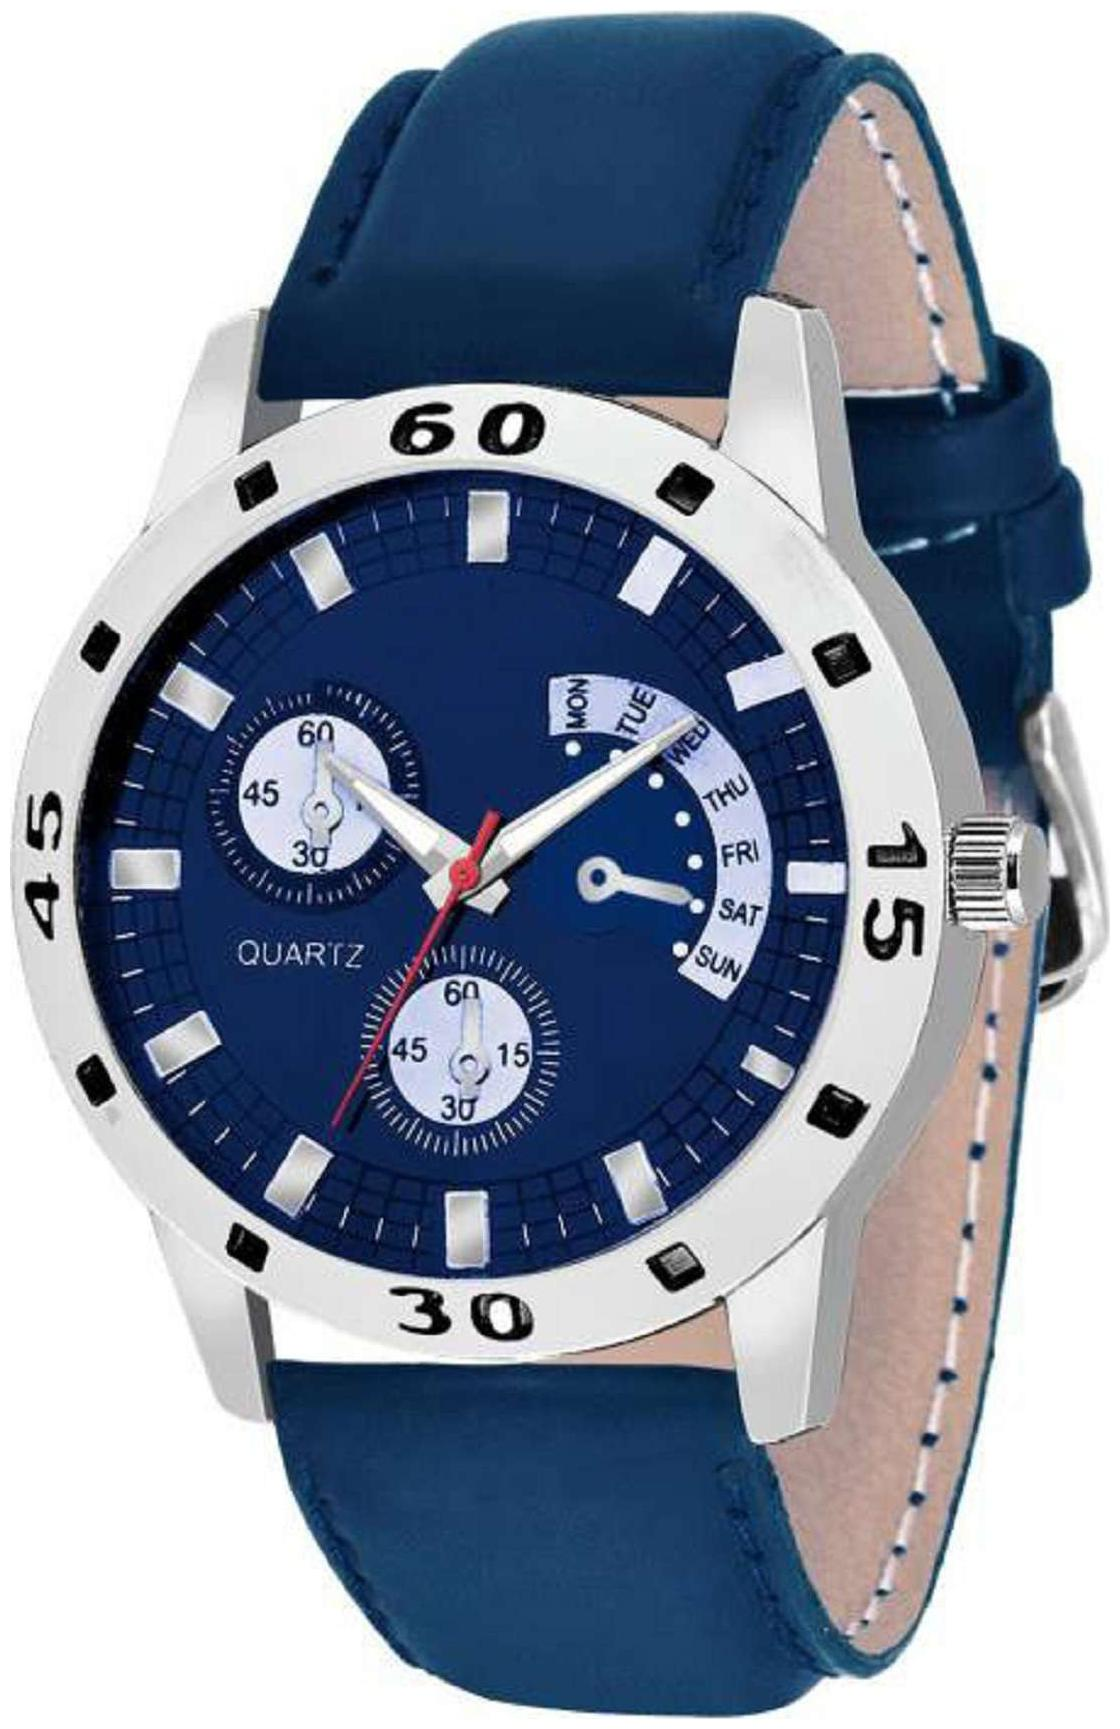 HRV Chronograph Pattern Blue Watch - For Men